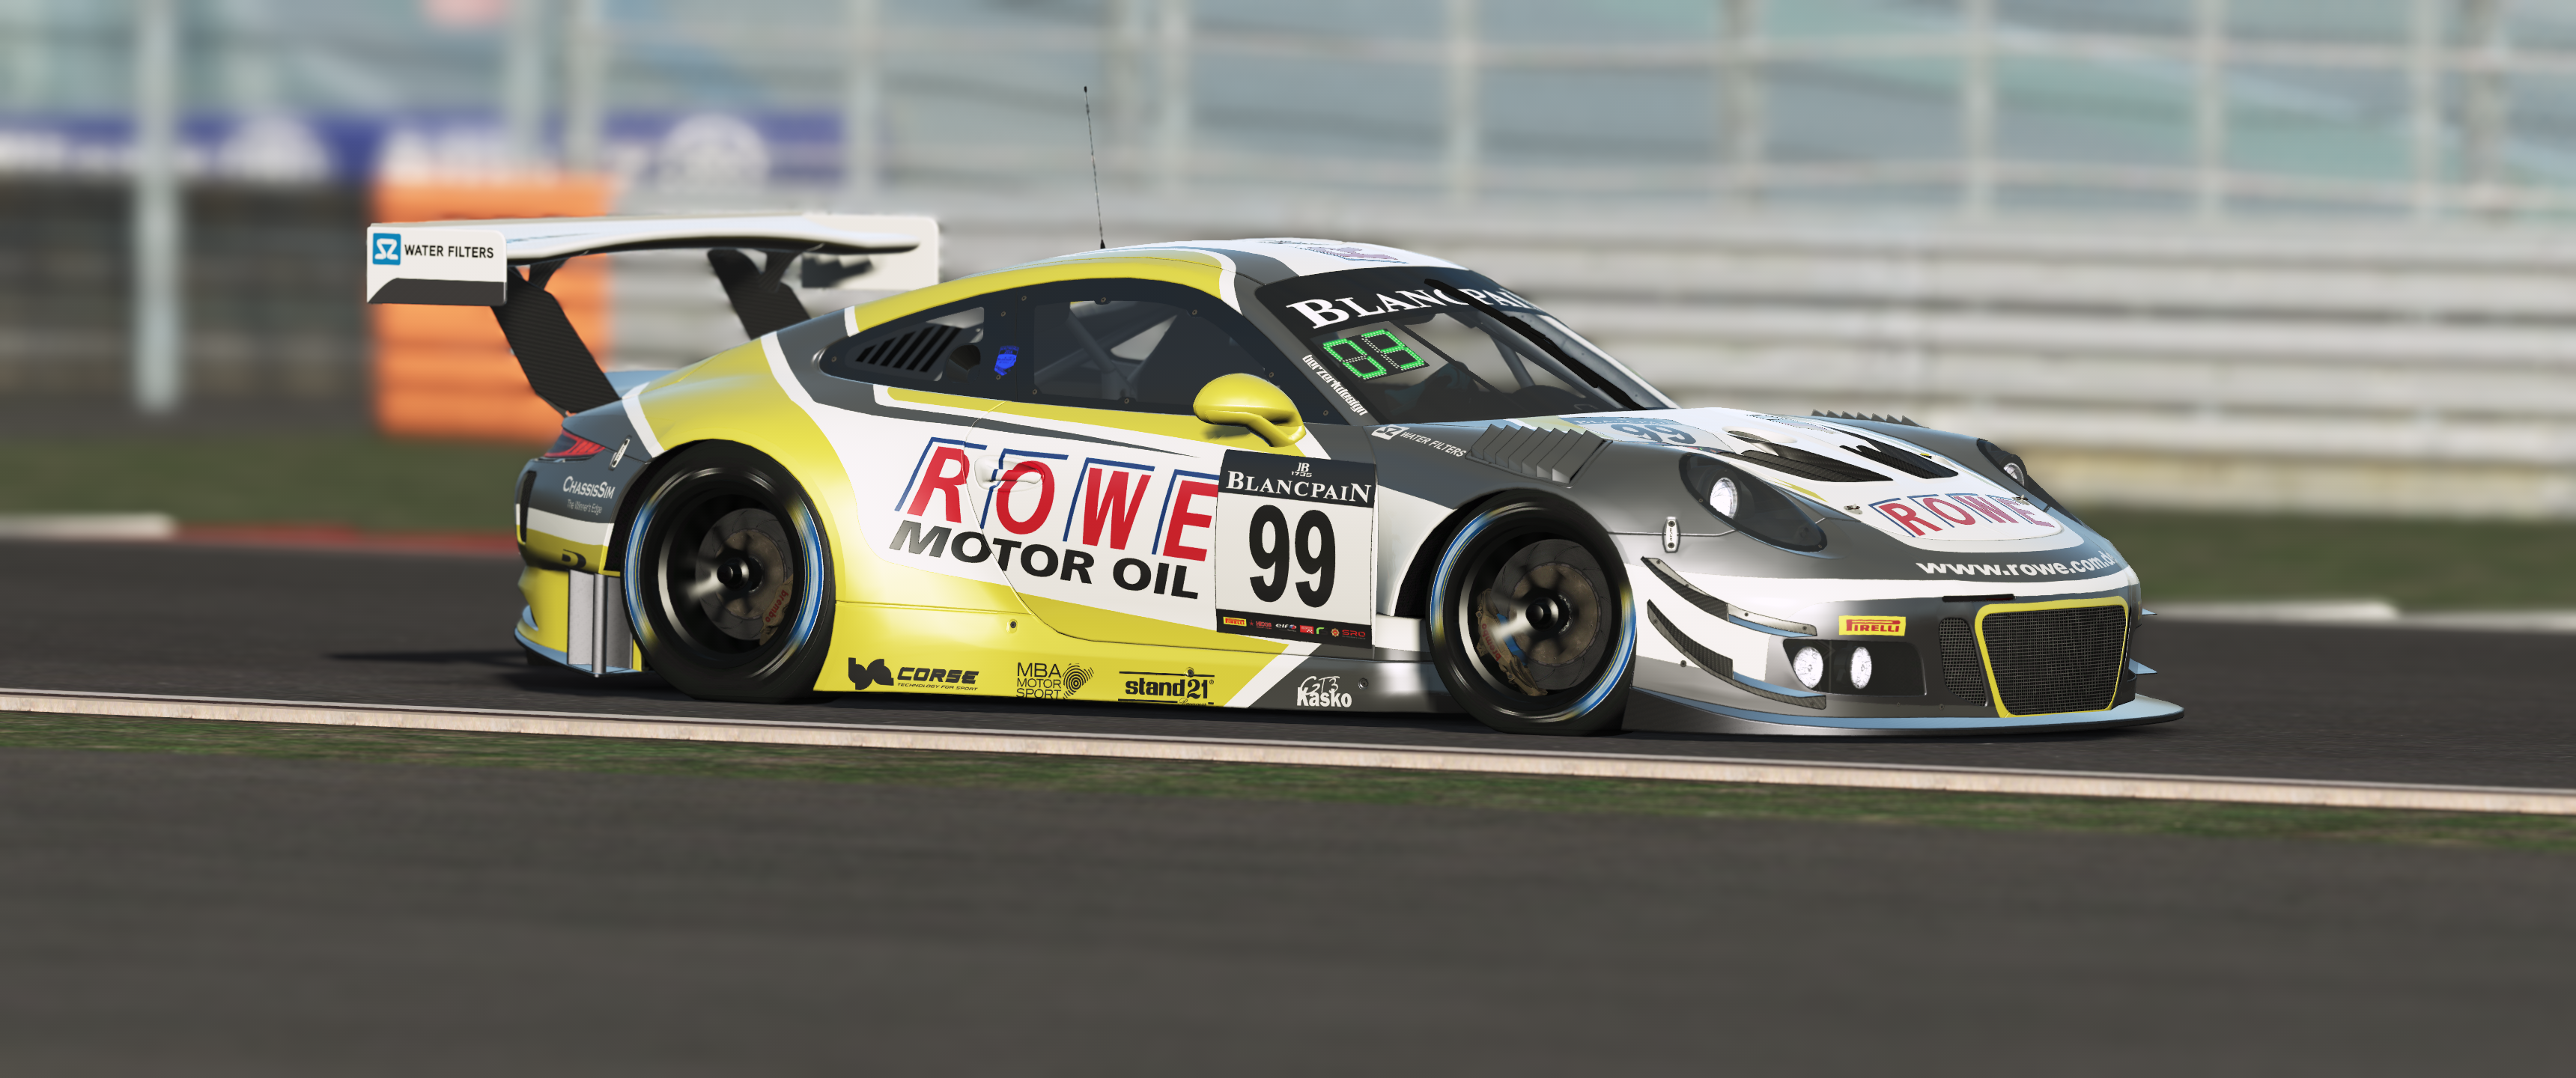 rFactor2 2019-02-27 16-52-42-09.png